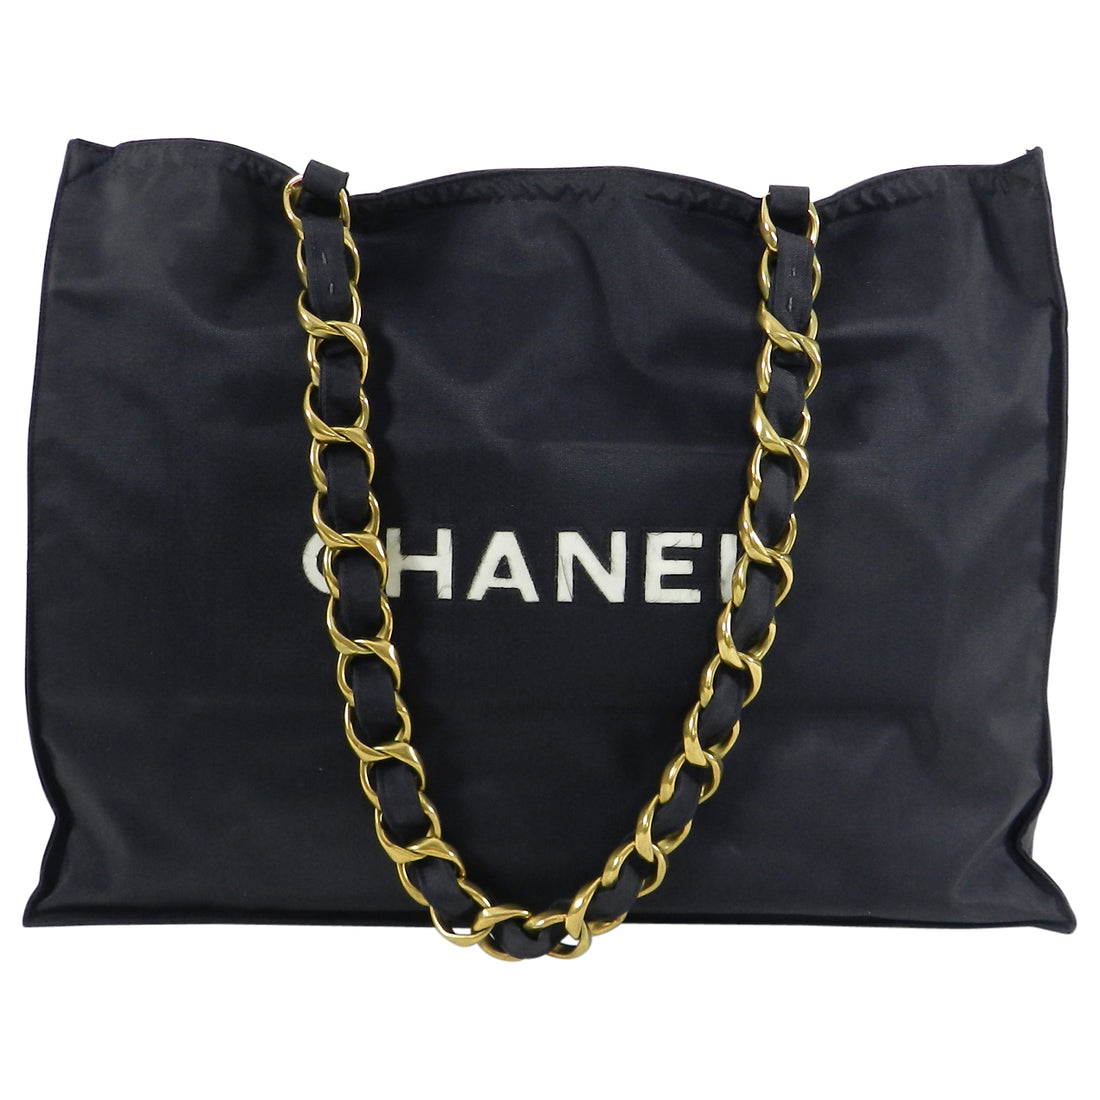 Chanel Vintage 1991 Black Nylon CC Logo Tote Bag with Gold Chain Straps